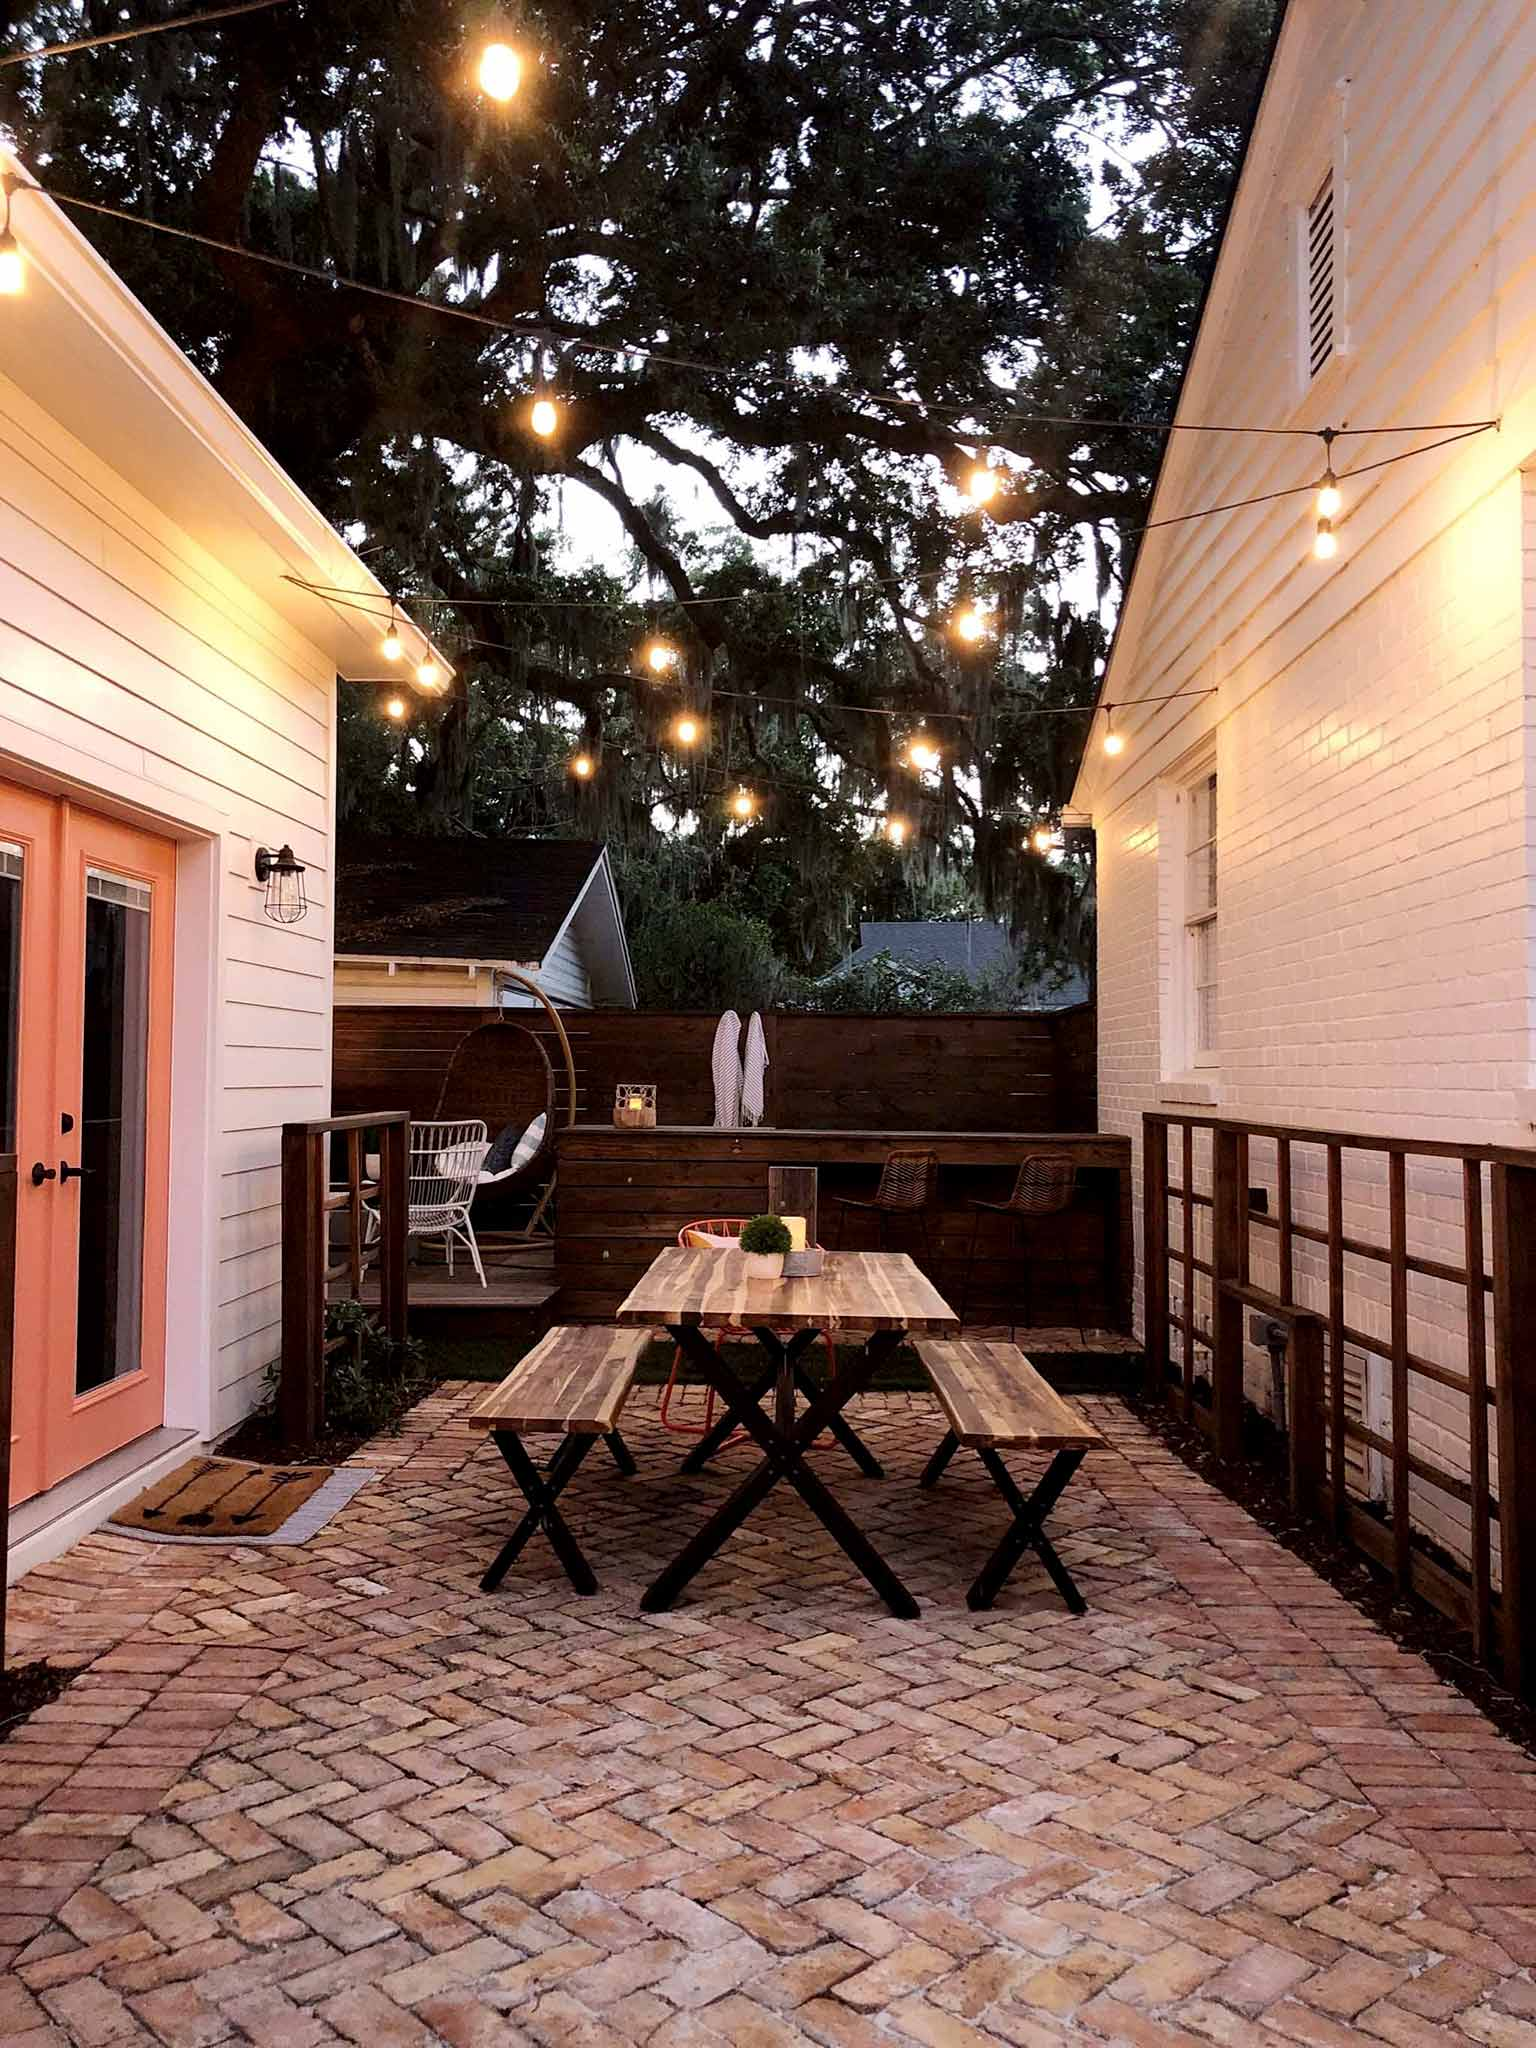 brick patio with table and benches under string lights